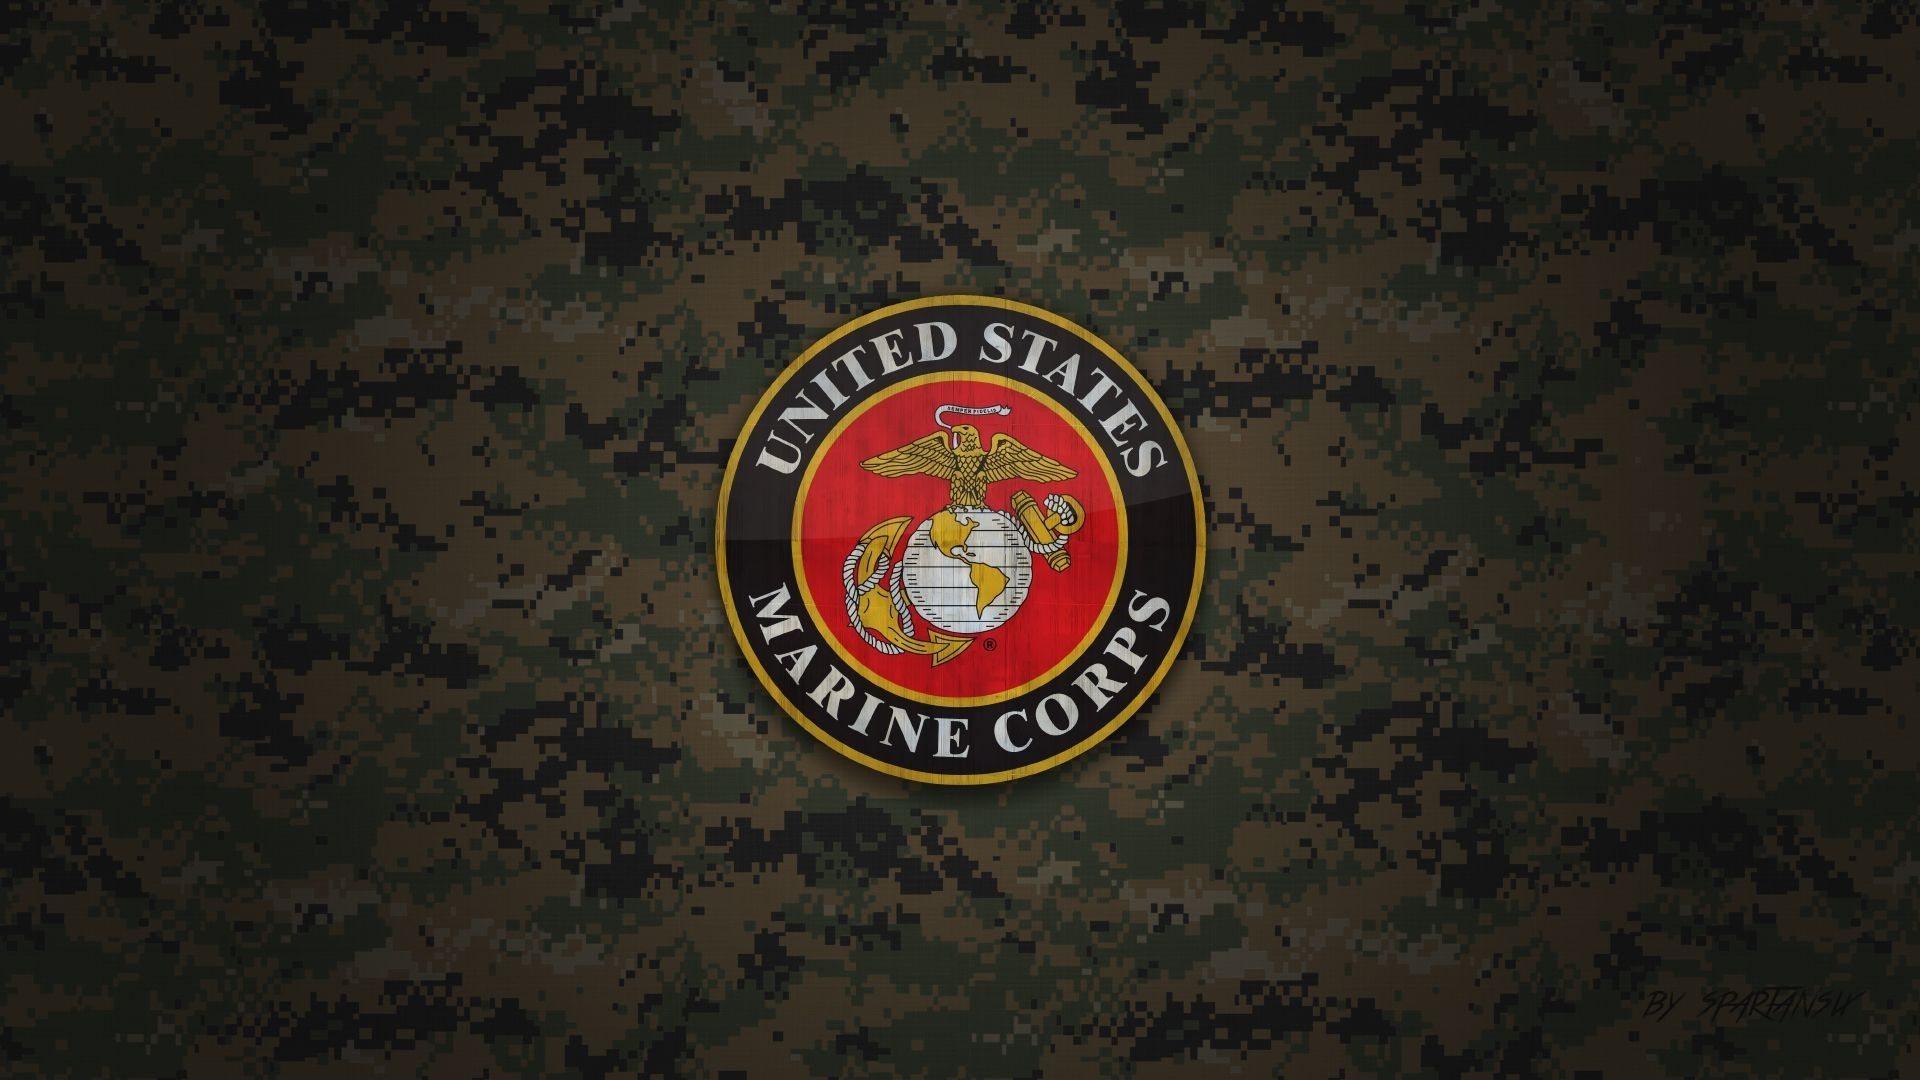 united states marine corps hd wallpapers - wallpaper cave